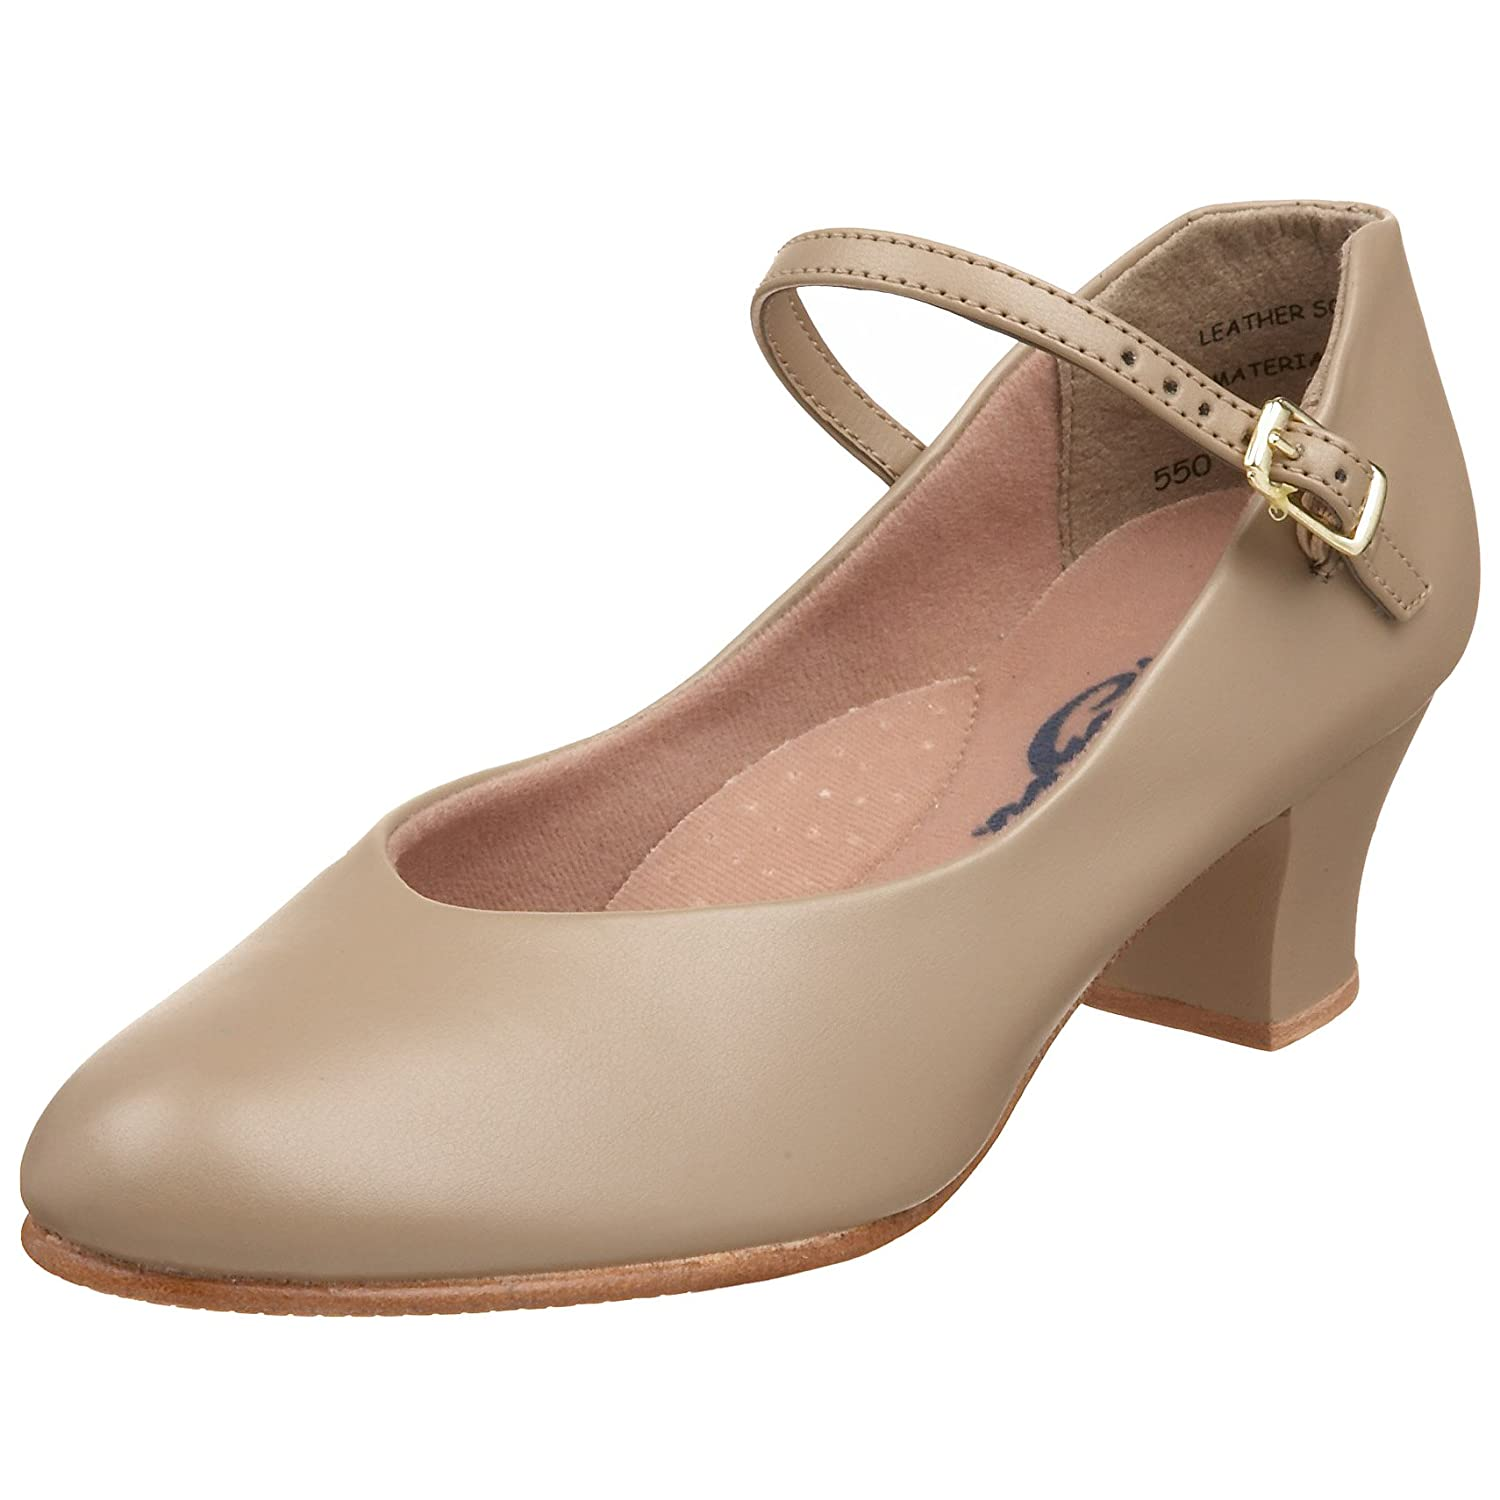 Capezio 550 Tan Junior Footlight B0002RRMZ2 10 B(M) US|Tan